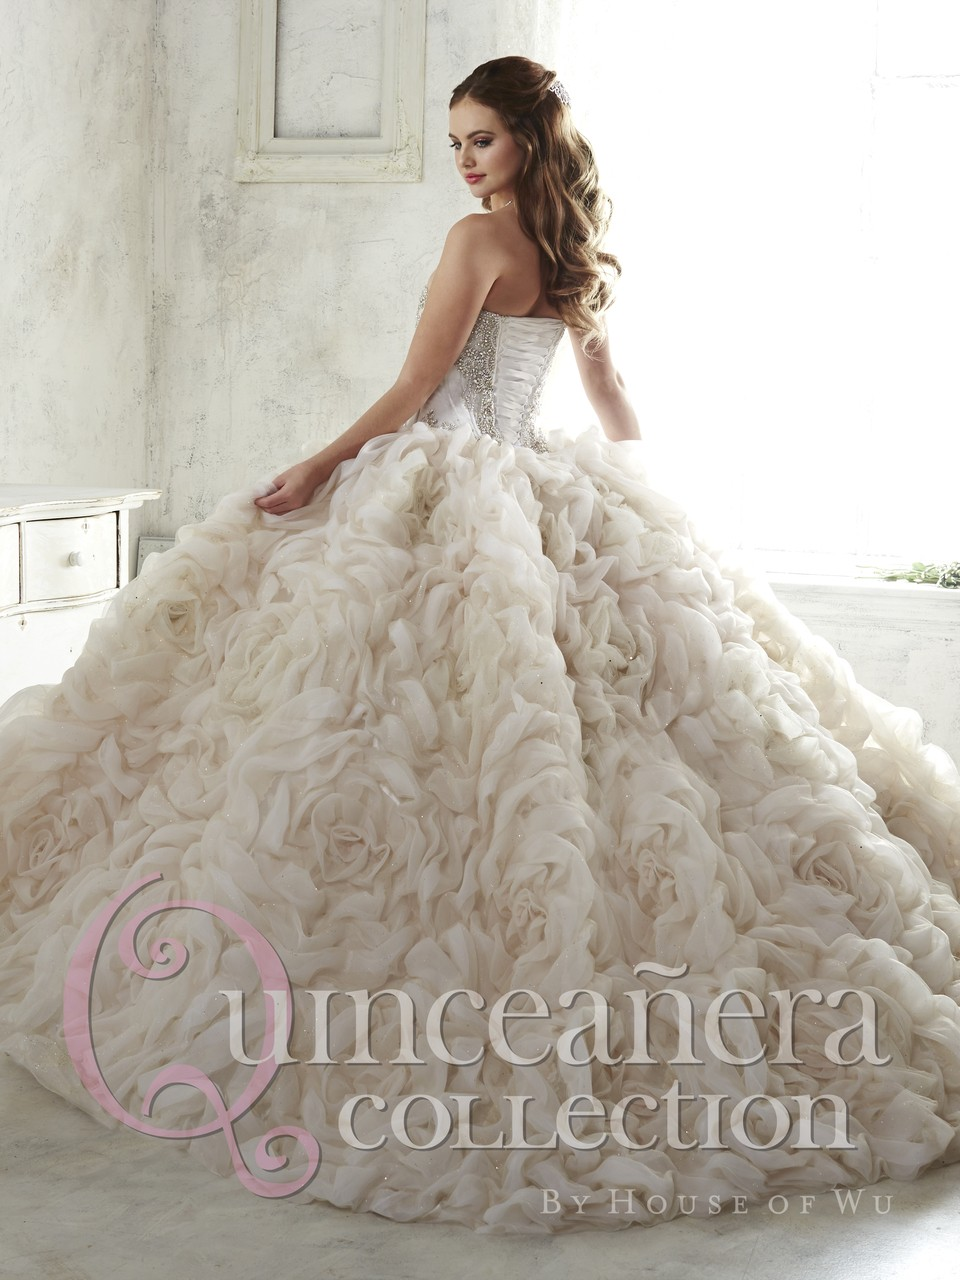 Royal-Luxury-Organza-Beaded-Long-Quinceanera-Dresses-2016-Lovely-Girls-Sweetheart-Ball-Gown-Lace-up-Party (3)